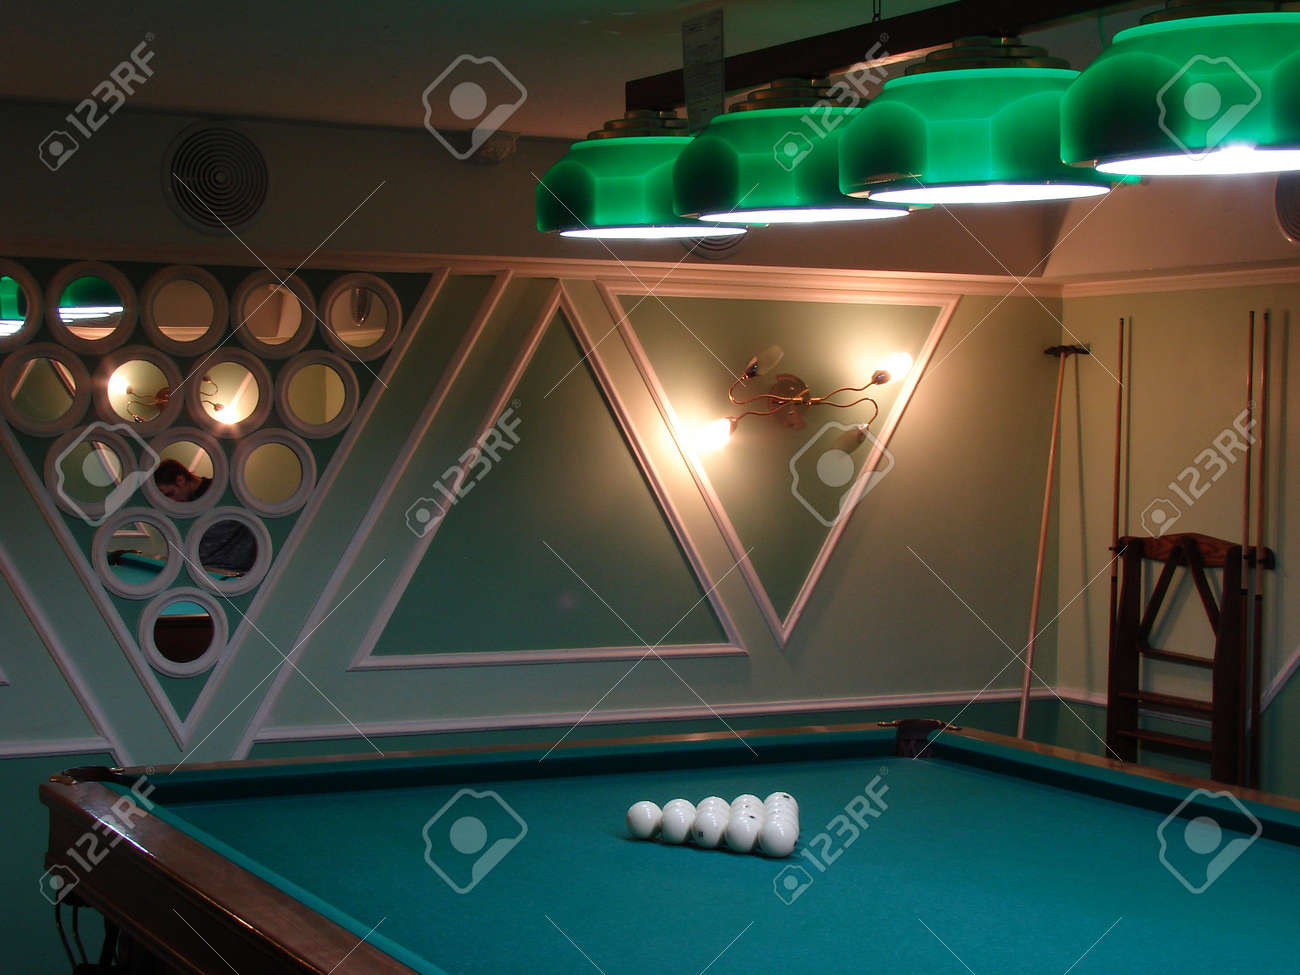 Pool table with white balls on green table Stock Photo - 1051237